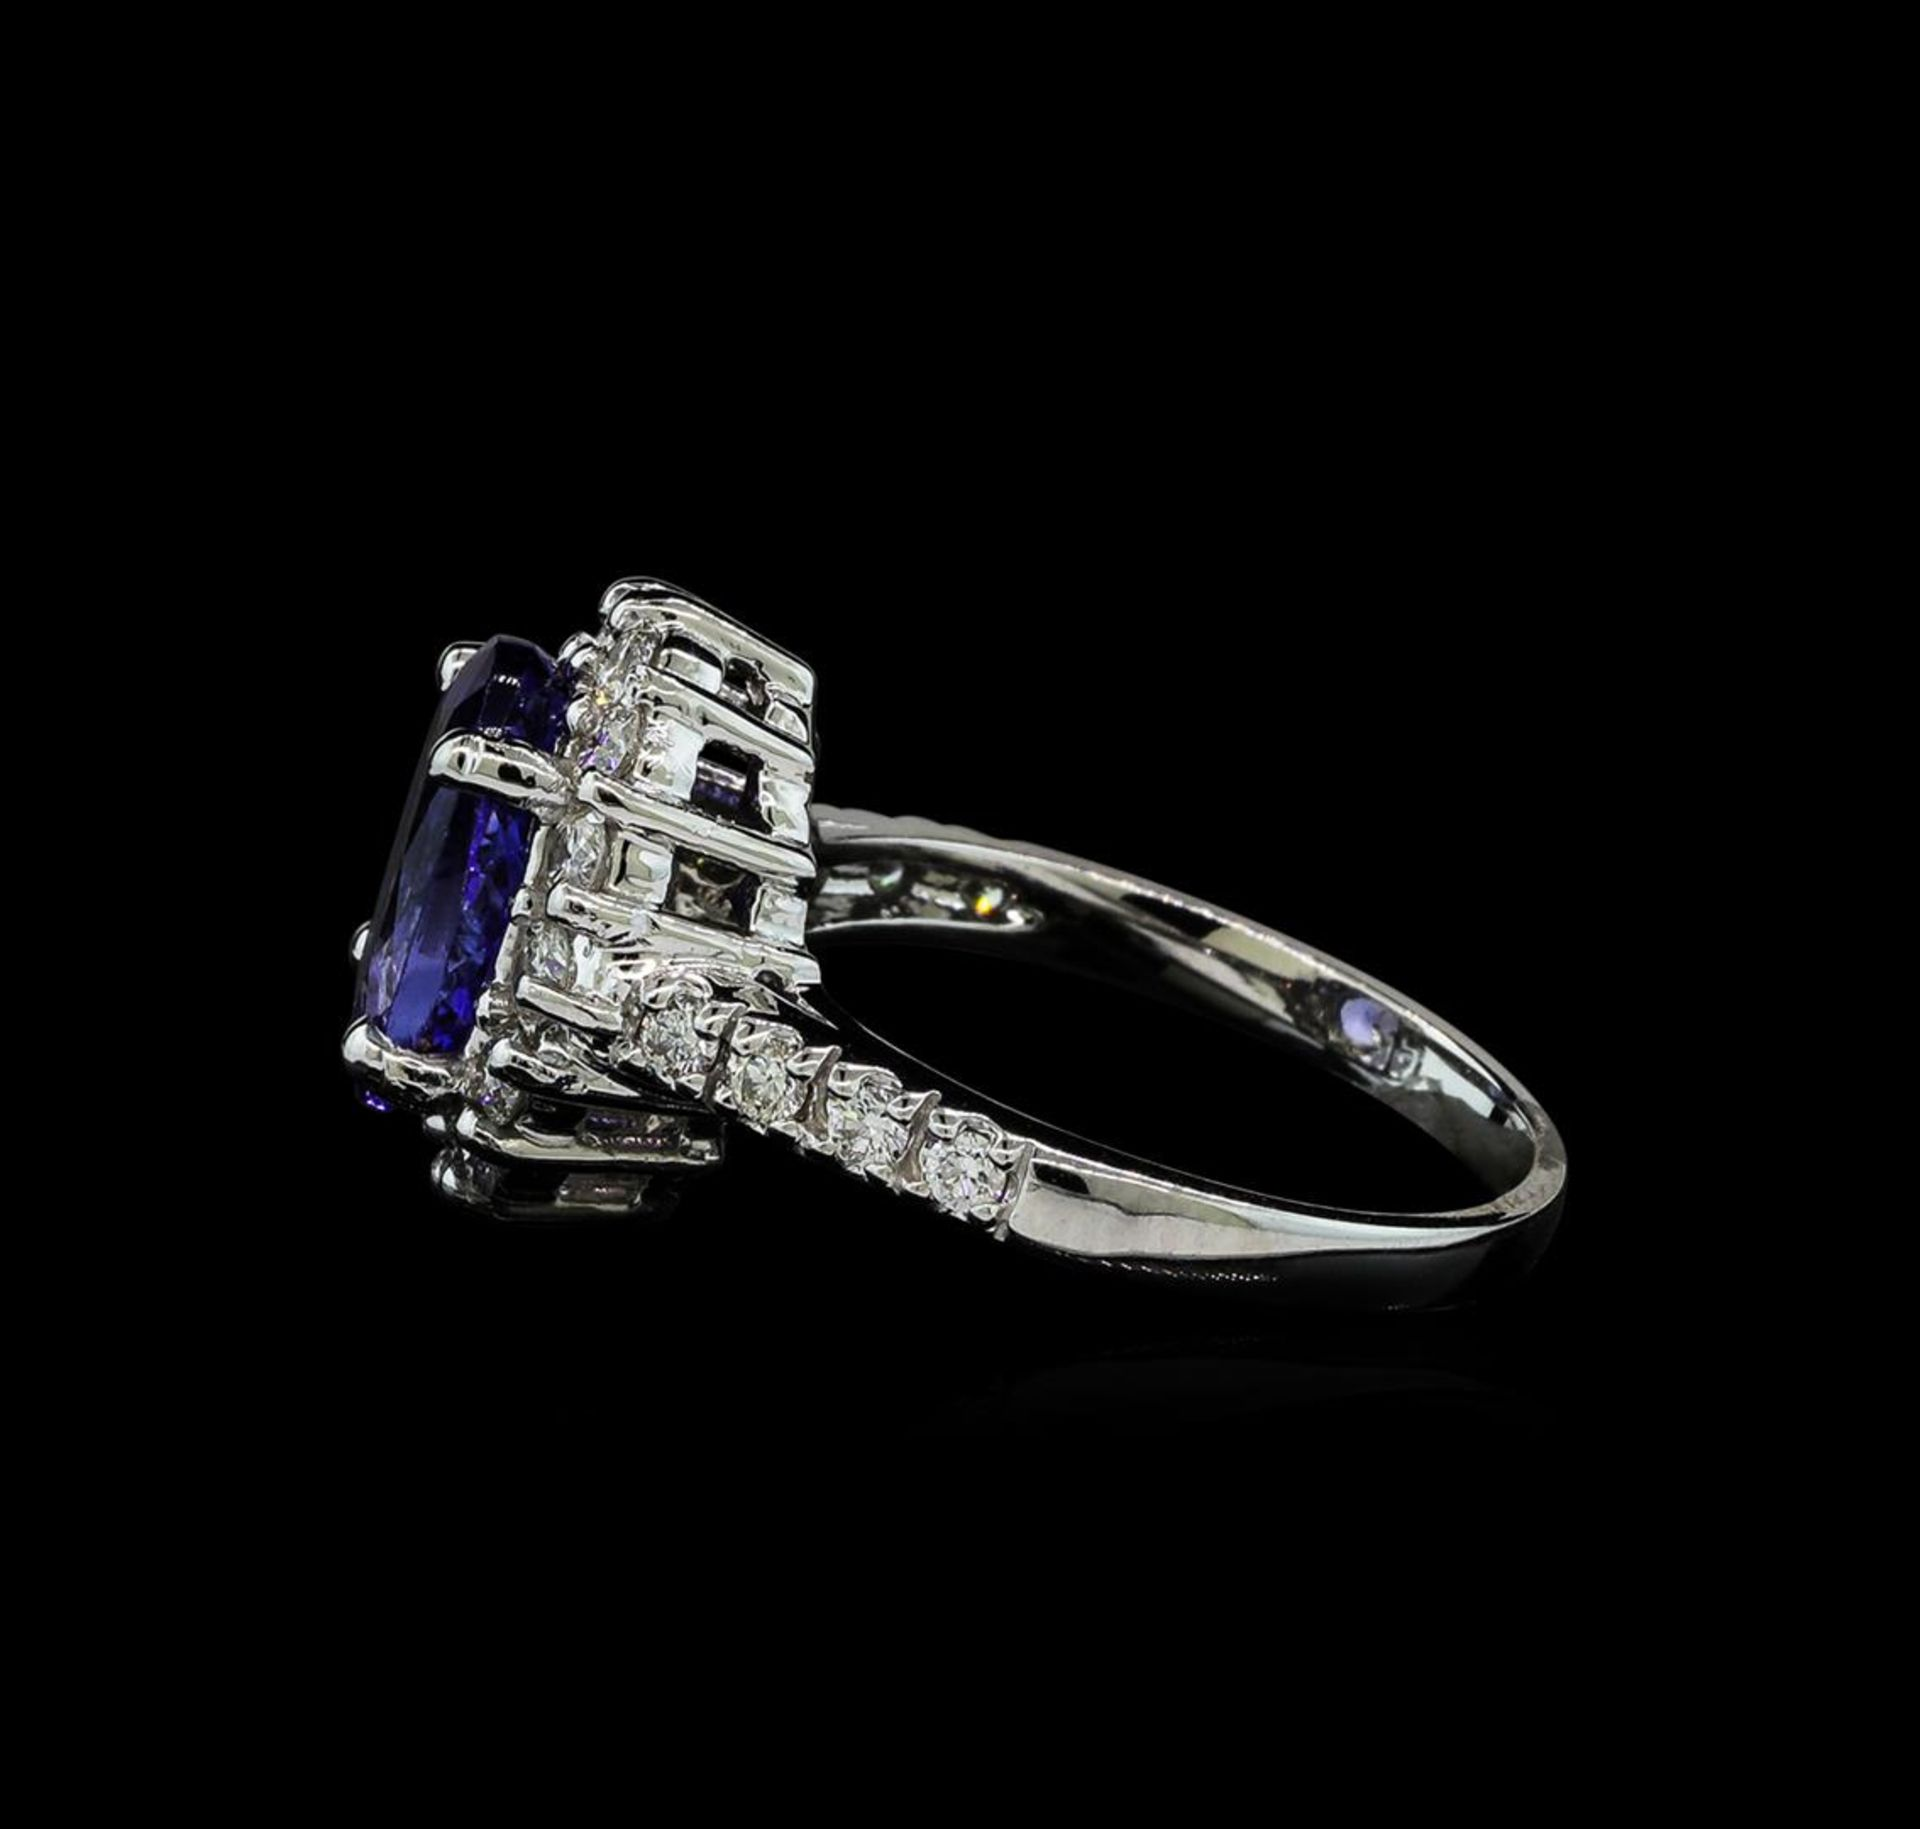 3.06 ctw Tanzanite and Diamond Ring - 14KT White Gold - Image 3 of 5